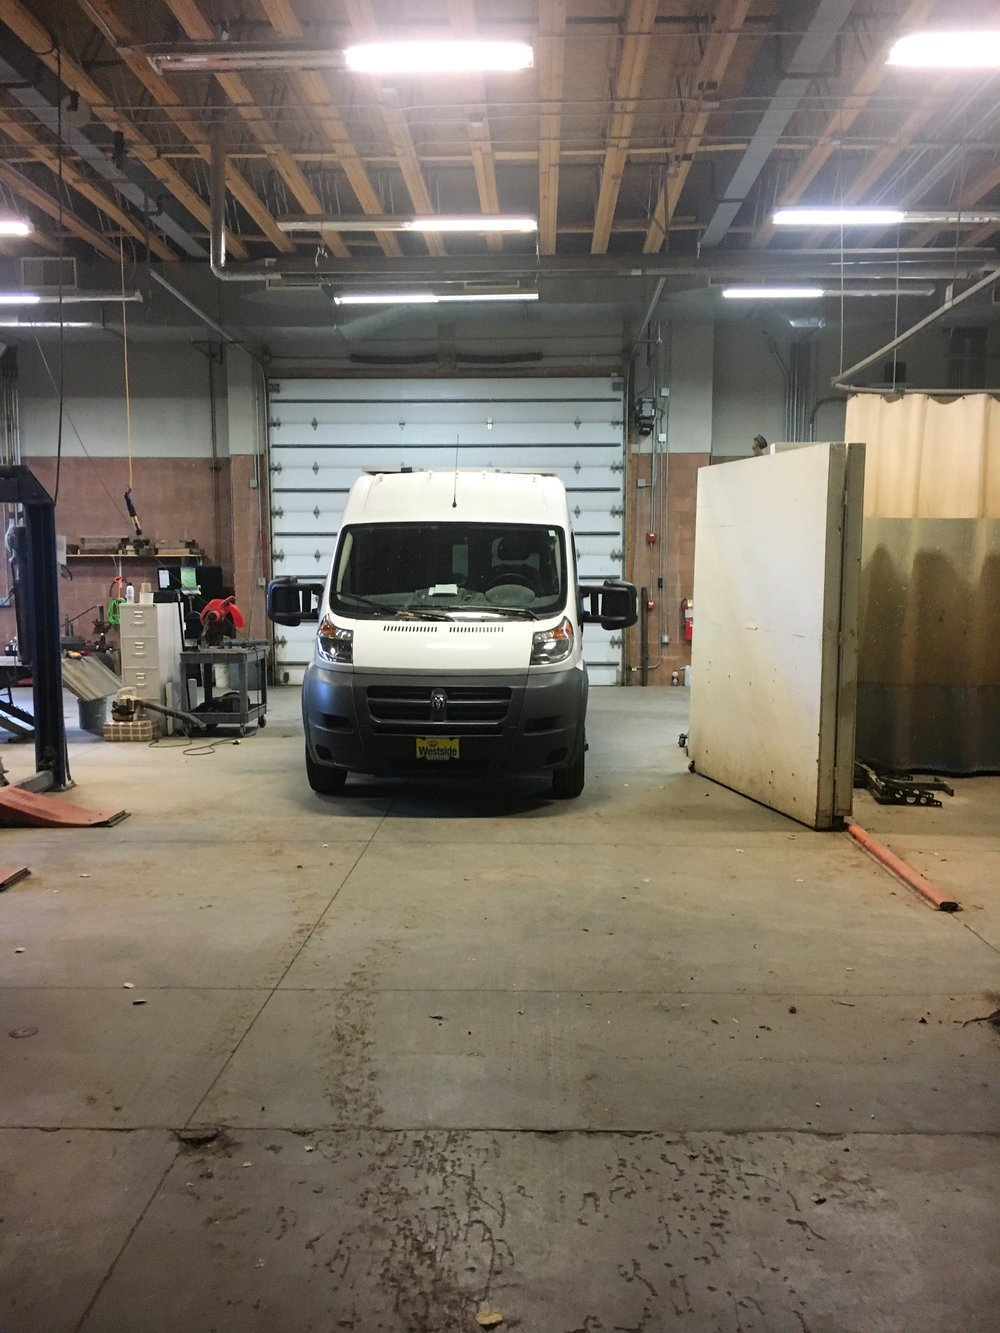 The van in our shop before getting started.